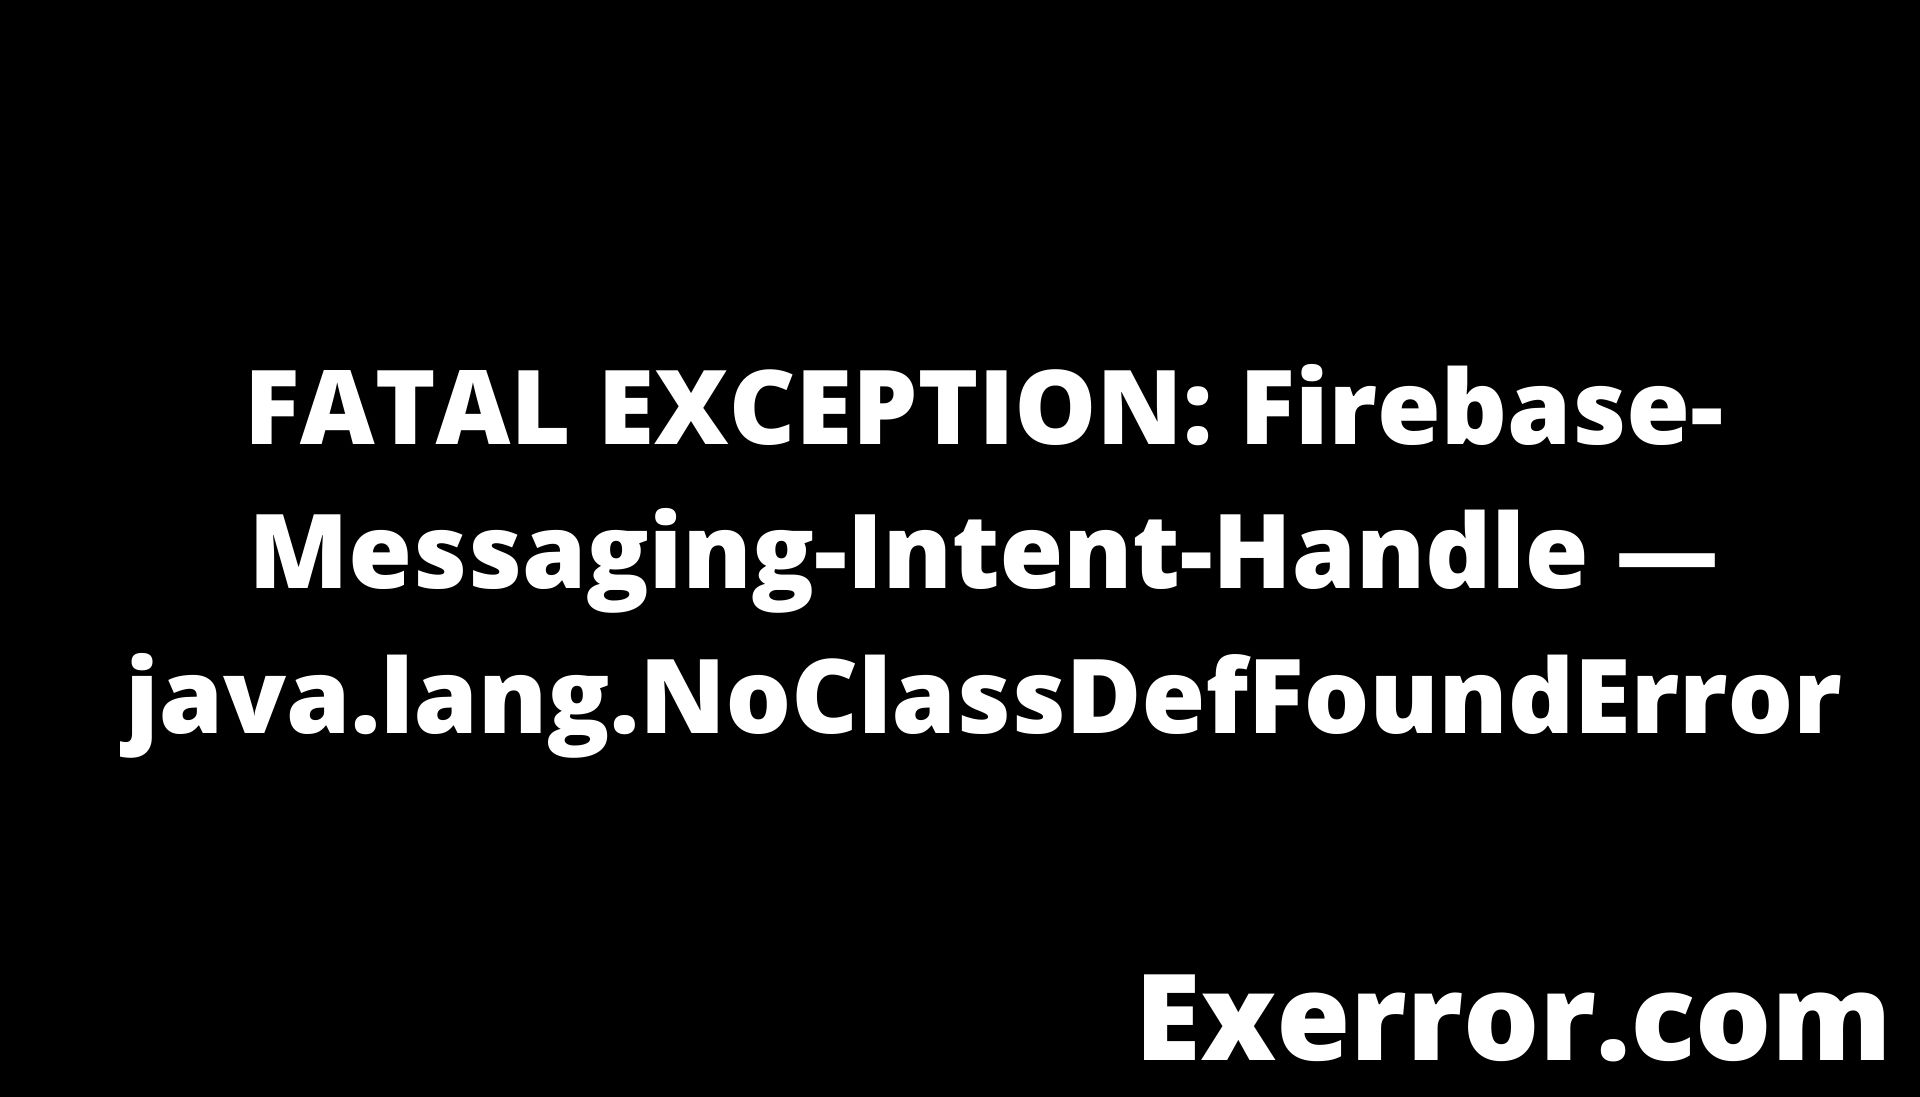 FATAL EXCEPTION: Firebase-Messaging-Intent-Handle — java.lang.NoClassDefFoundError, fatal exception firebase-messaging-intent-handle java.lang.noclassdeffounderror